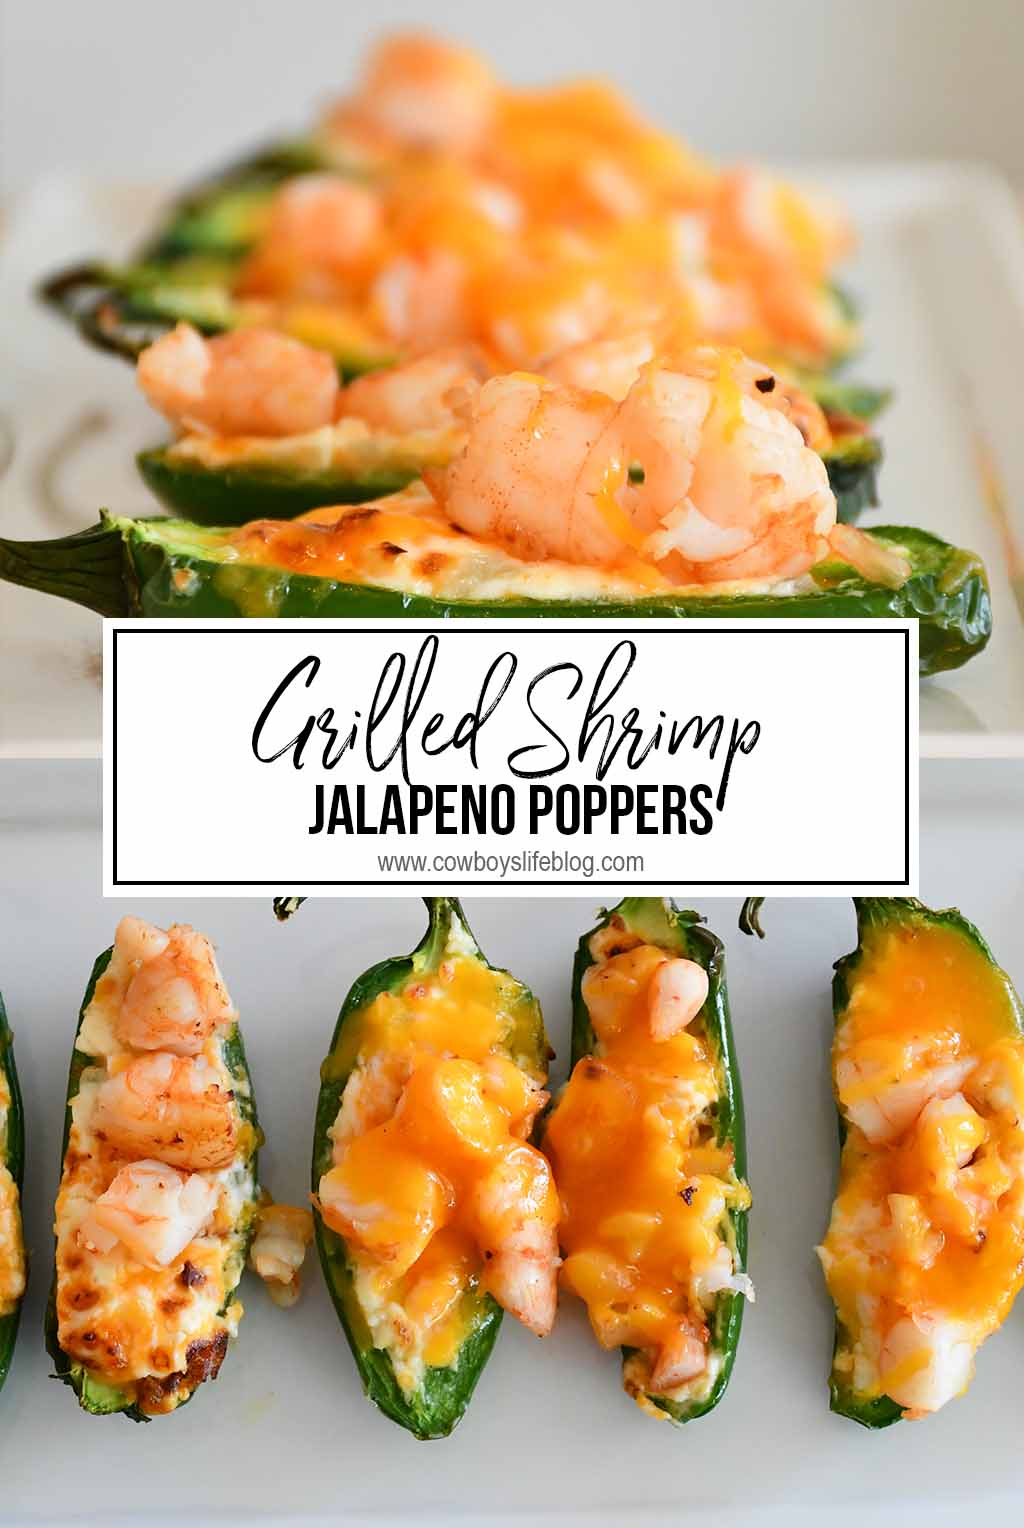 grilled shrimp jalapeño poppers | jalapeño poppers | grilled poppers | grilled shrimp | appetizers | game day recipes | football recipes #jalapenopoppers #appetizers #gameday